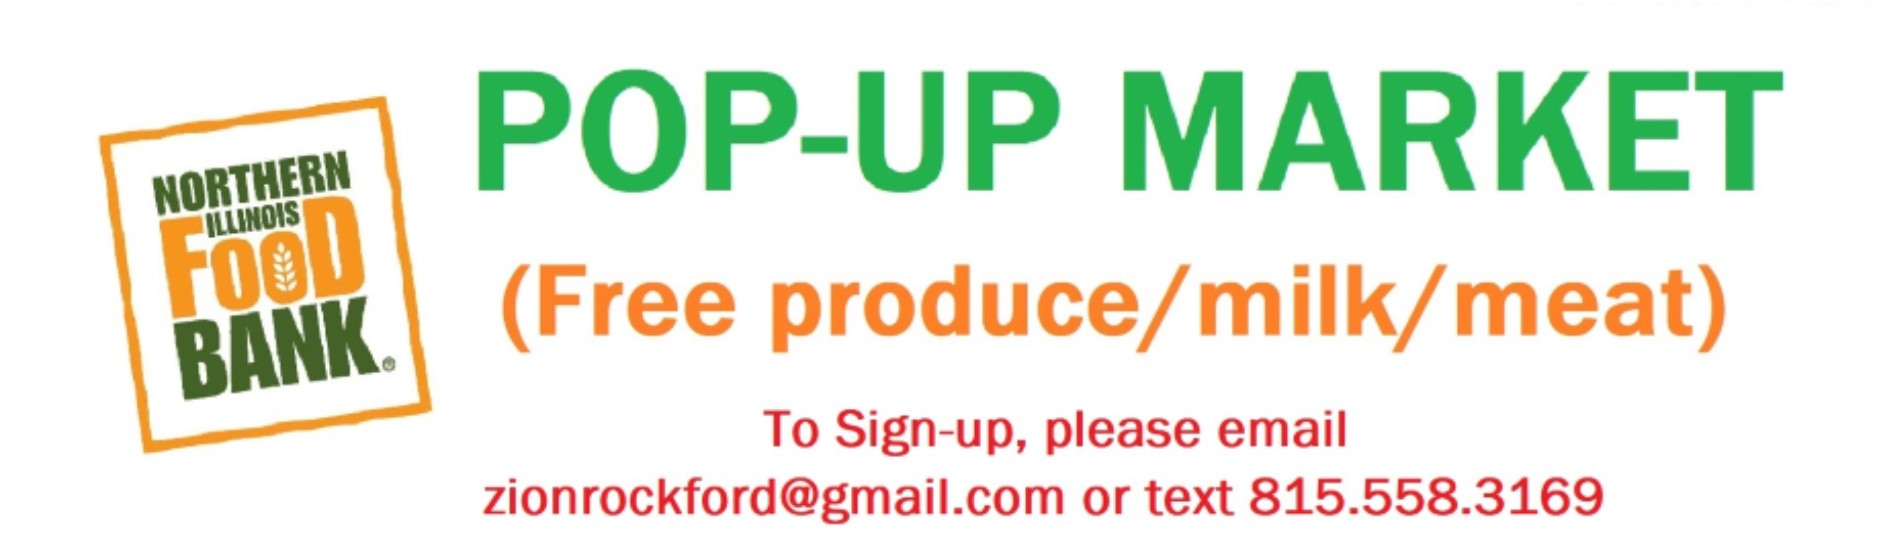 Pop Up Market signup